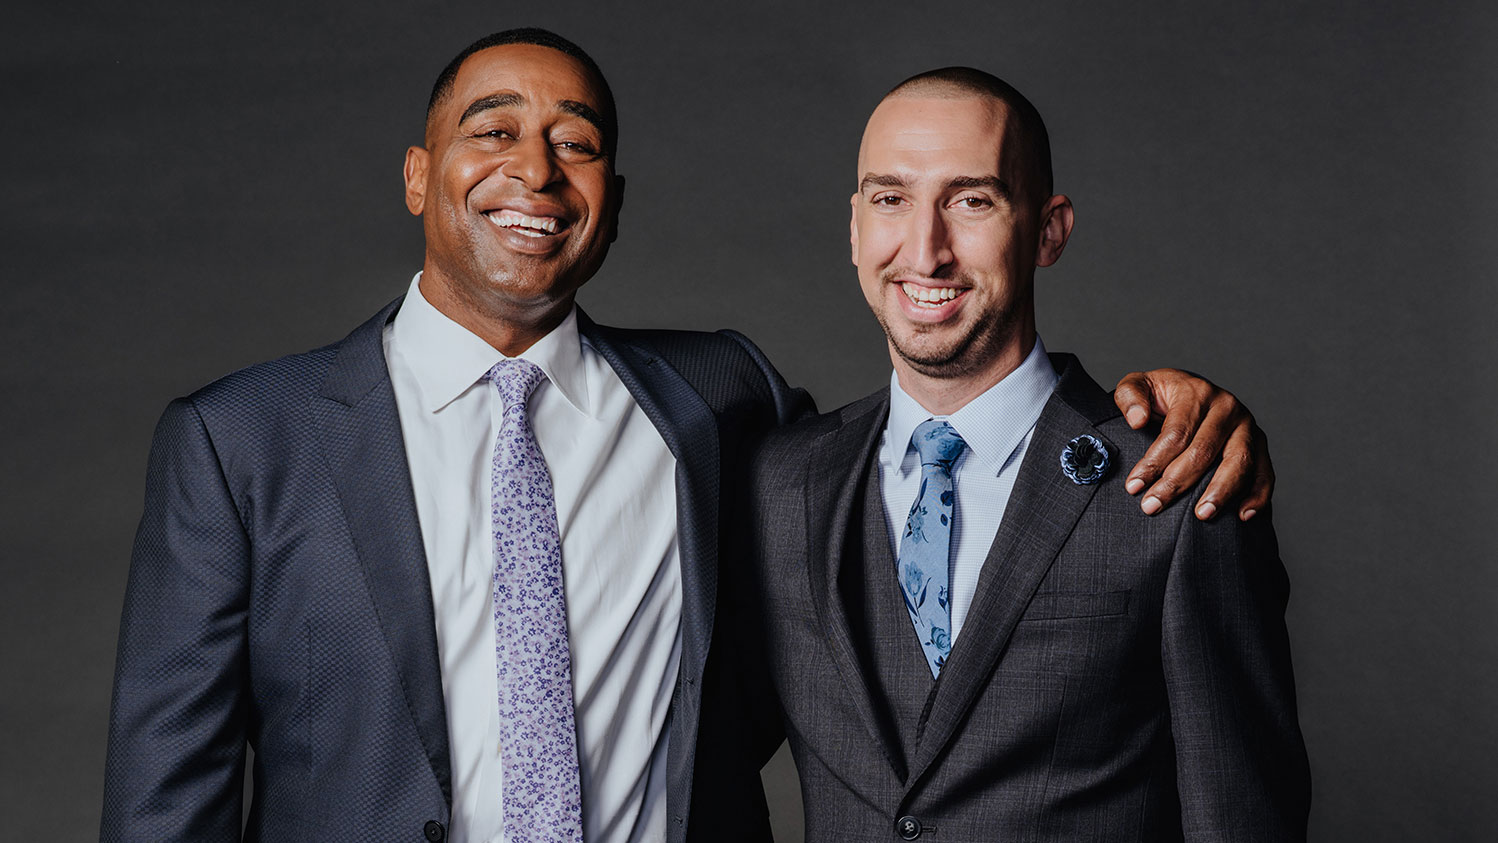 FIRST THINGS FIRST WITH CRIS CARTER AND NICK WRIGHT Comes to